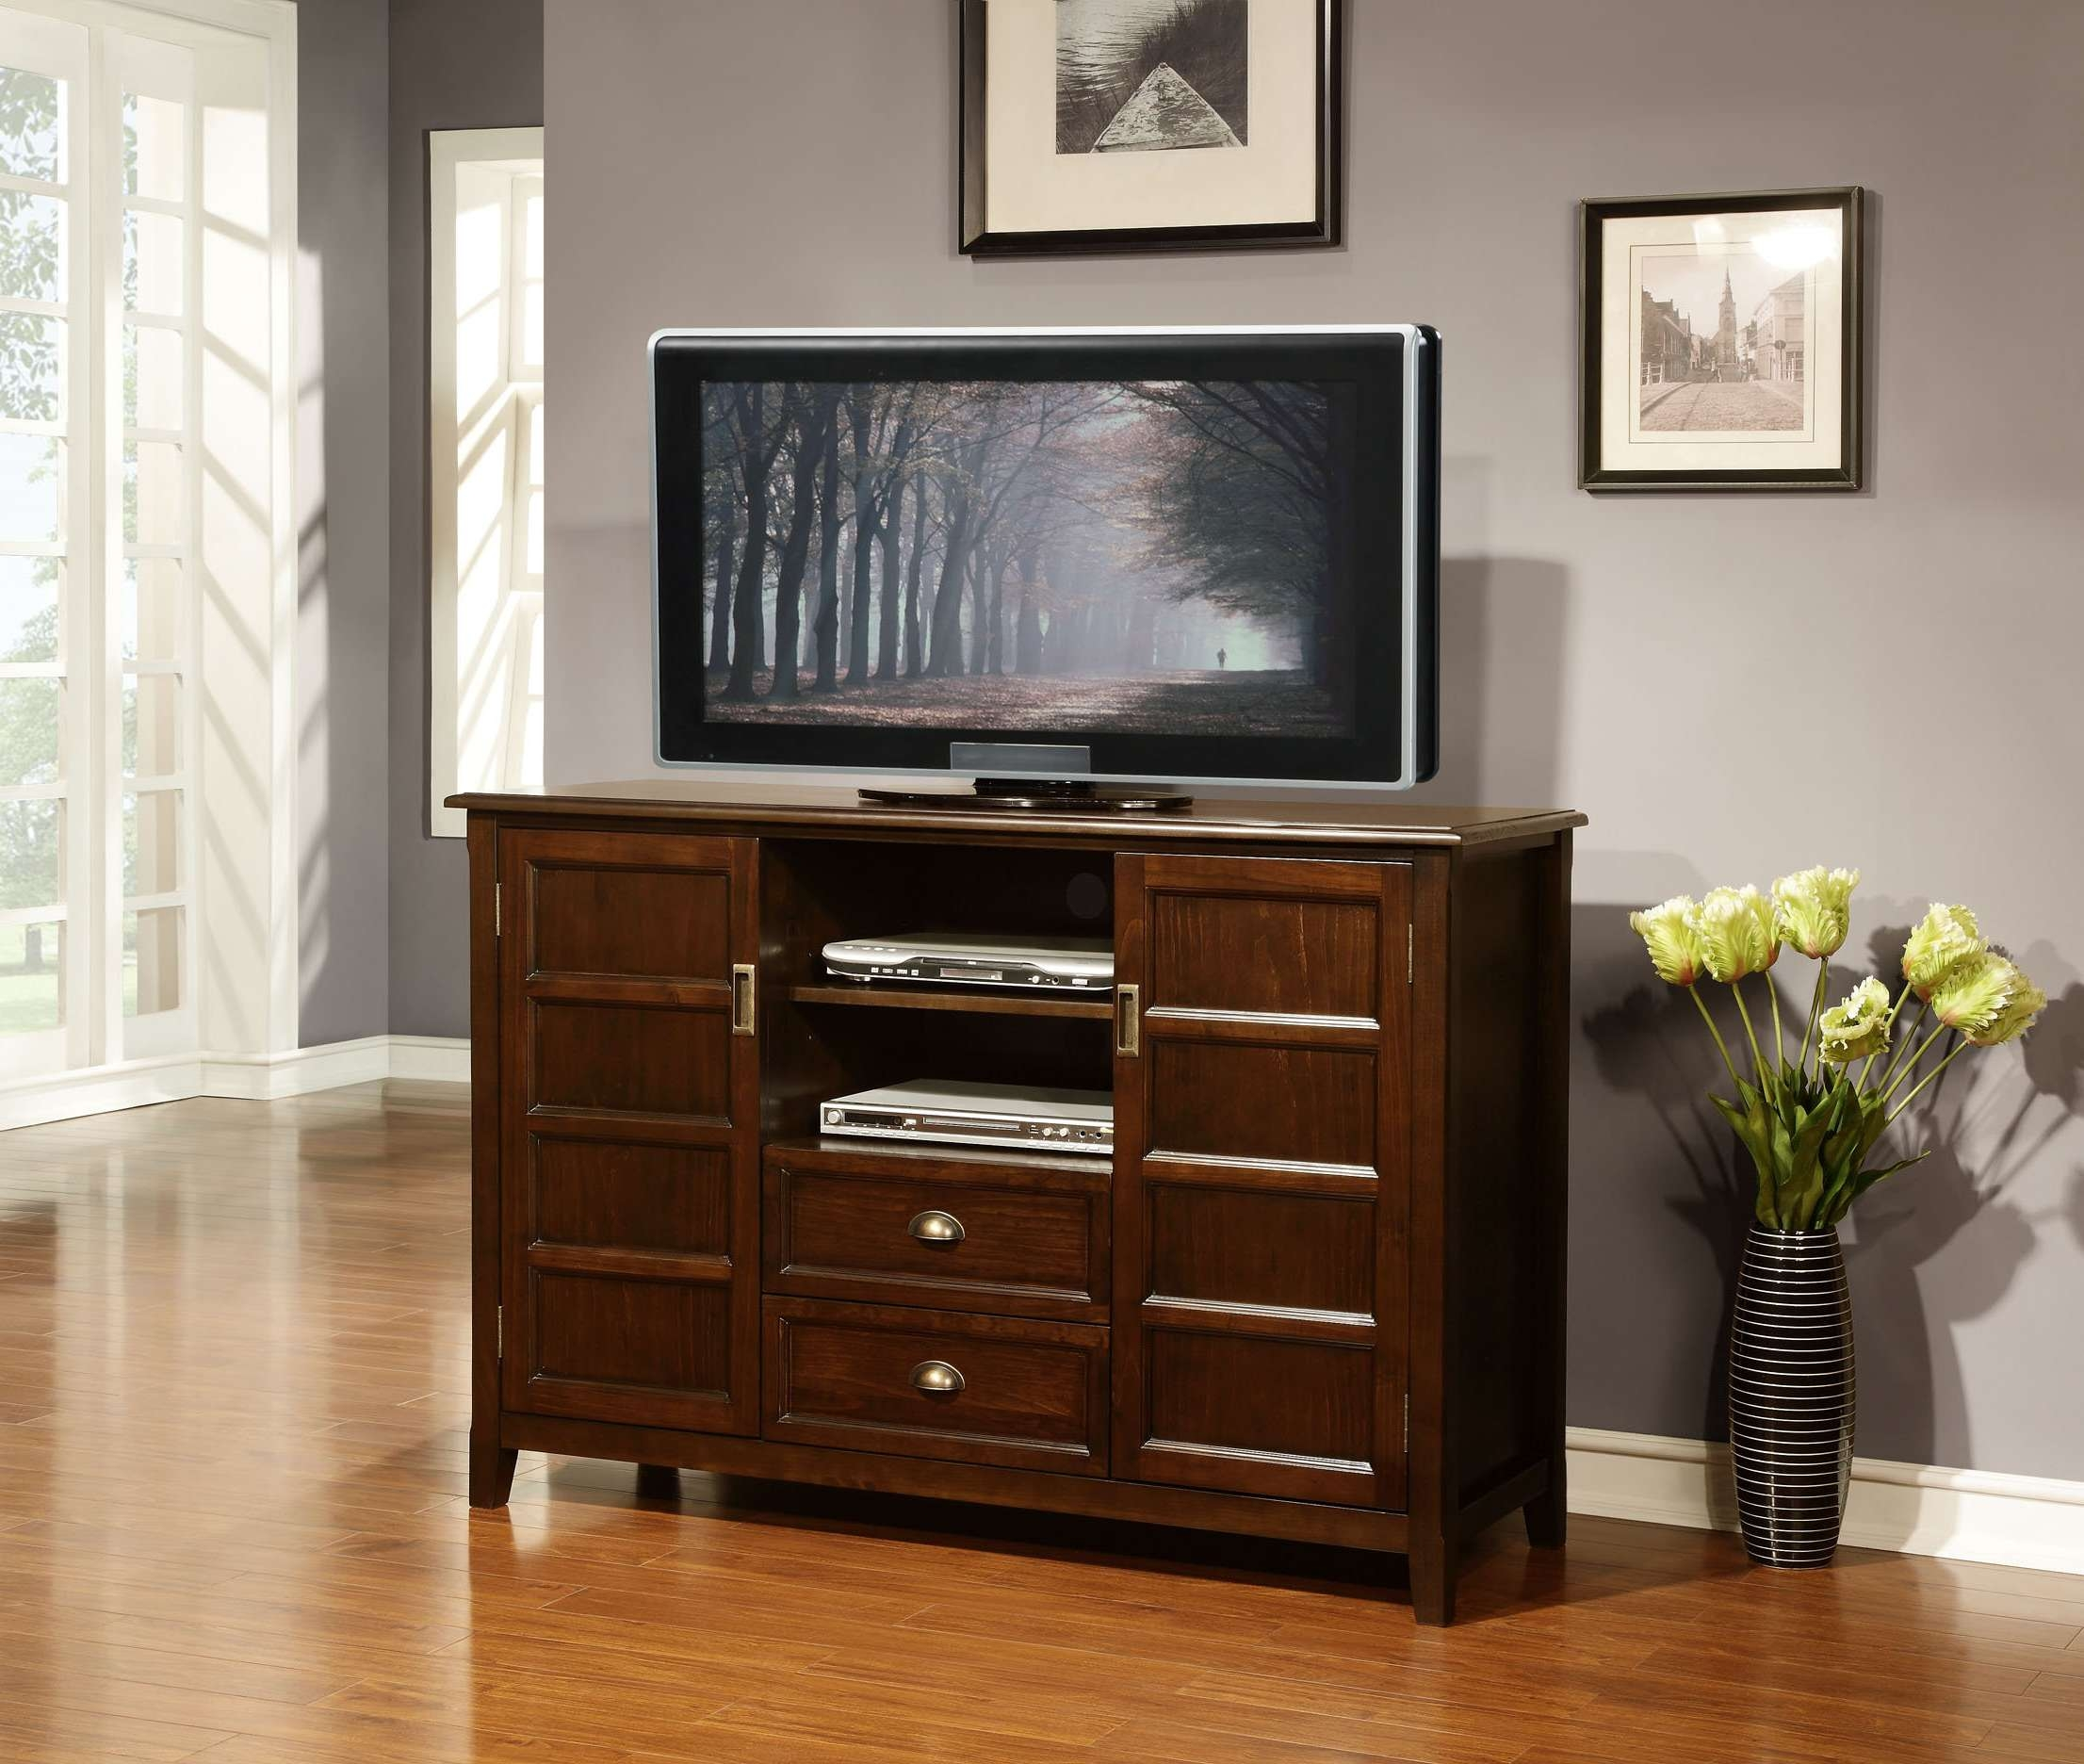 Dark Brown Stained Tv Stand With Two Shelves And Drawers On The With Regard To Light Colored Tv Stands (View 6 of 15)